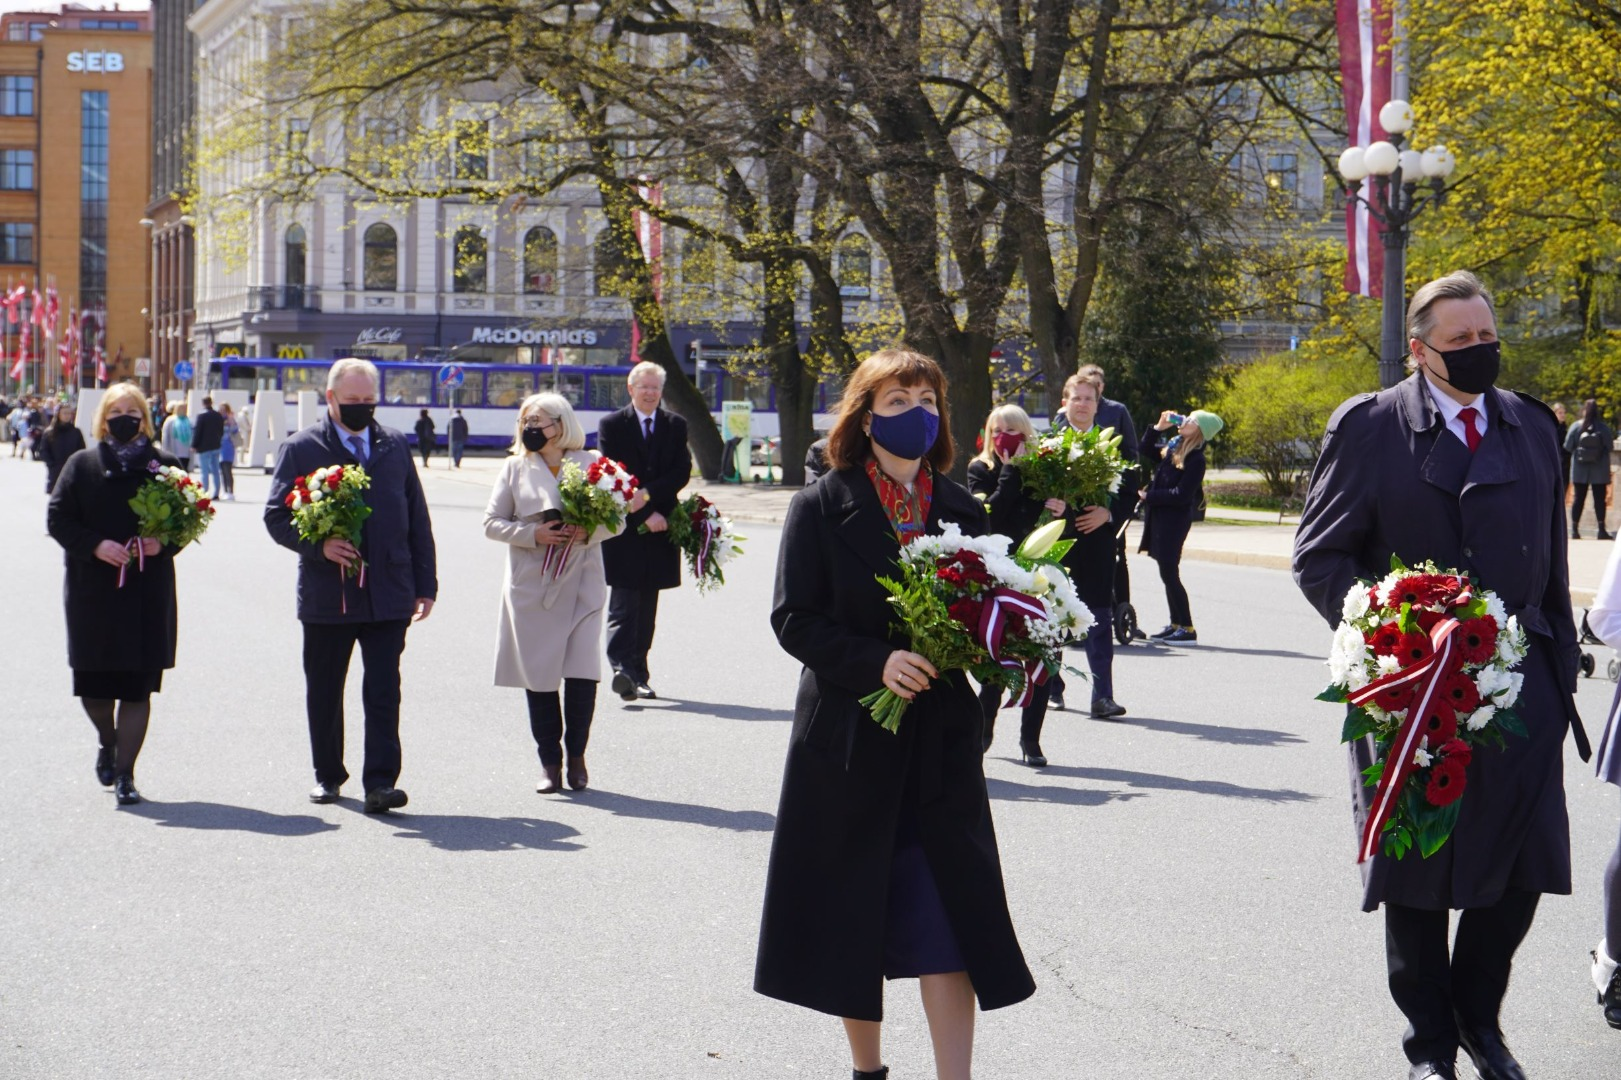 04.05.2021. The Chief Justice of the Supreme Court, the President of the Constitutional Court, chairs of Senate's Departments, and judges lay flowers at the Freedom Monument